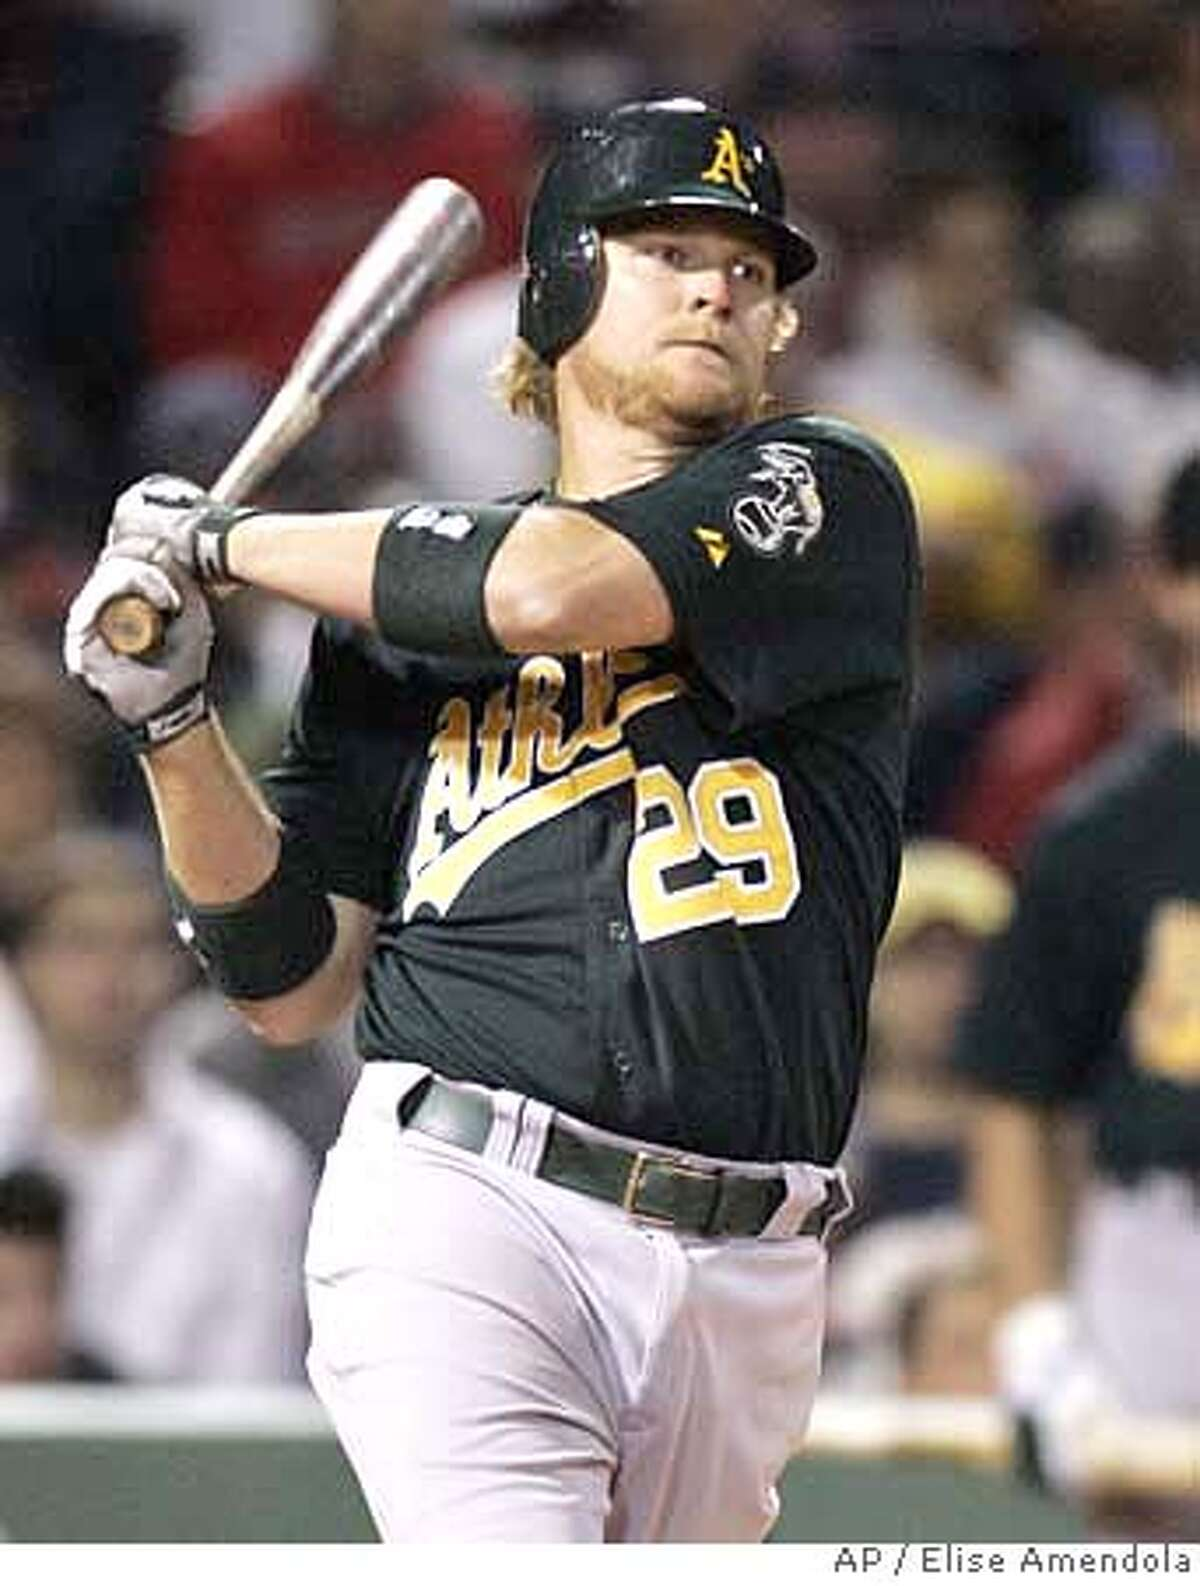 Oakland Athletics' Dan Johnson (29) watches his RBI double scoring Mike Piazza against the Boston Red Sox in the tenth inning of their baseball game at Fenway Park in Boston Tuesday, May 1, 2007. Johnson's hit proved to be the game-winner in their 5-4 victory over the Red Sox. (AP Photo/Elise Amendola)